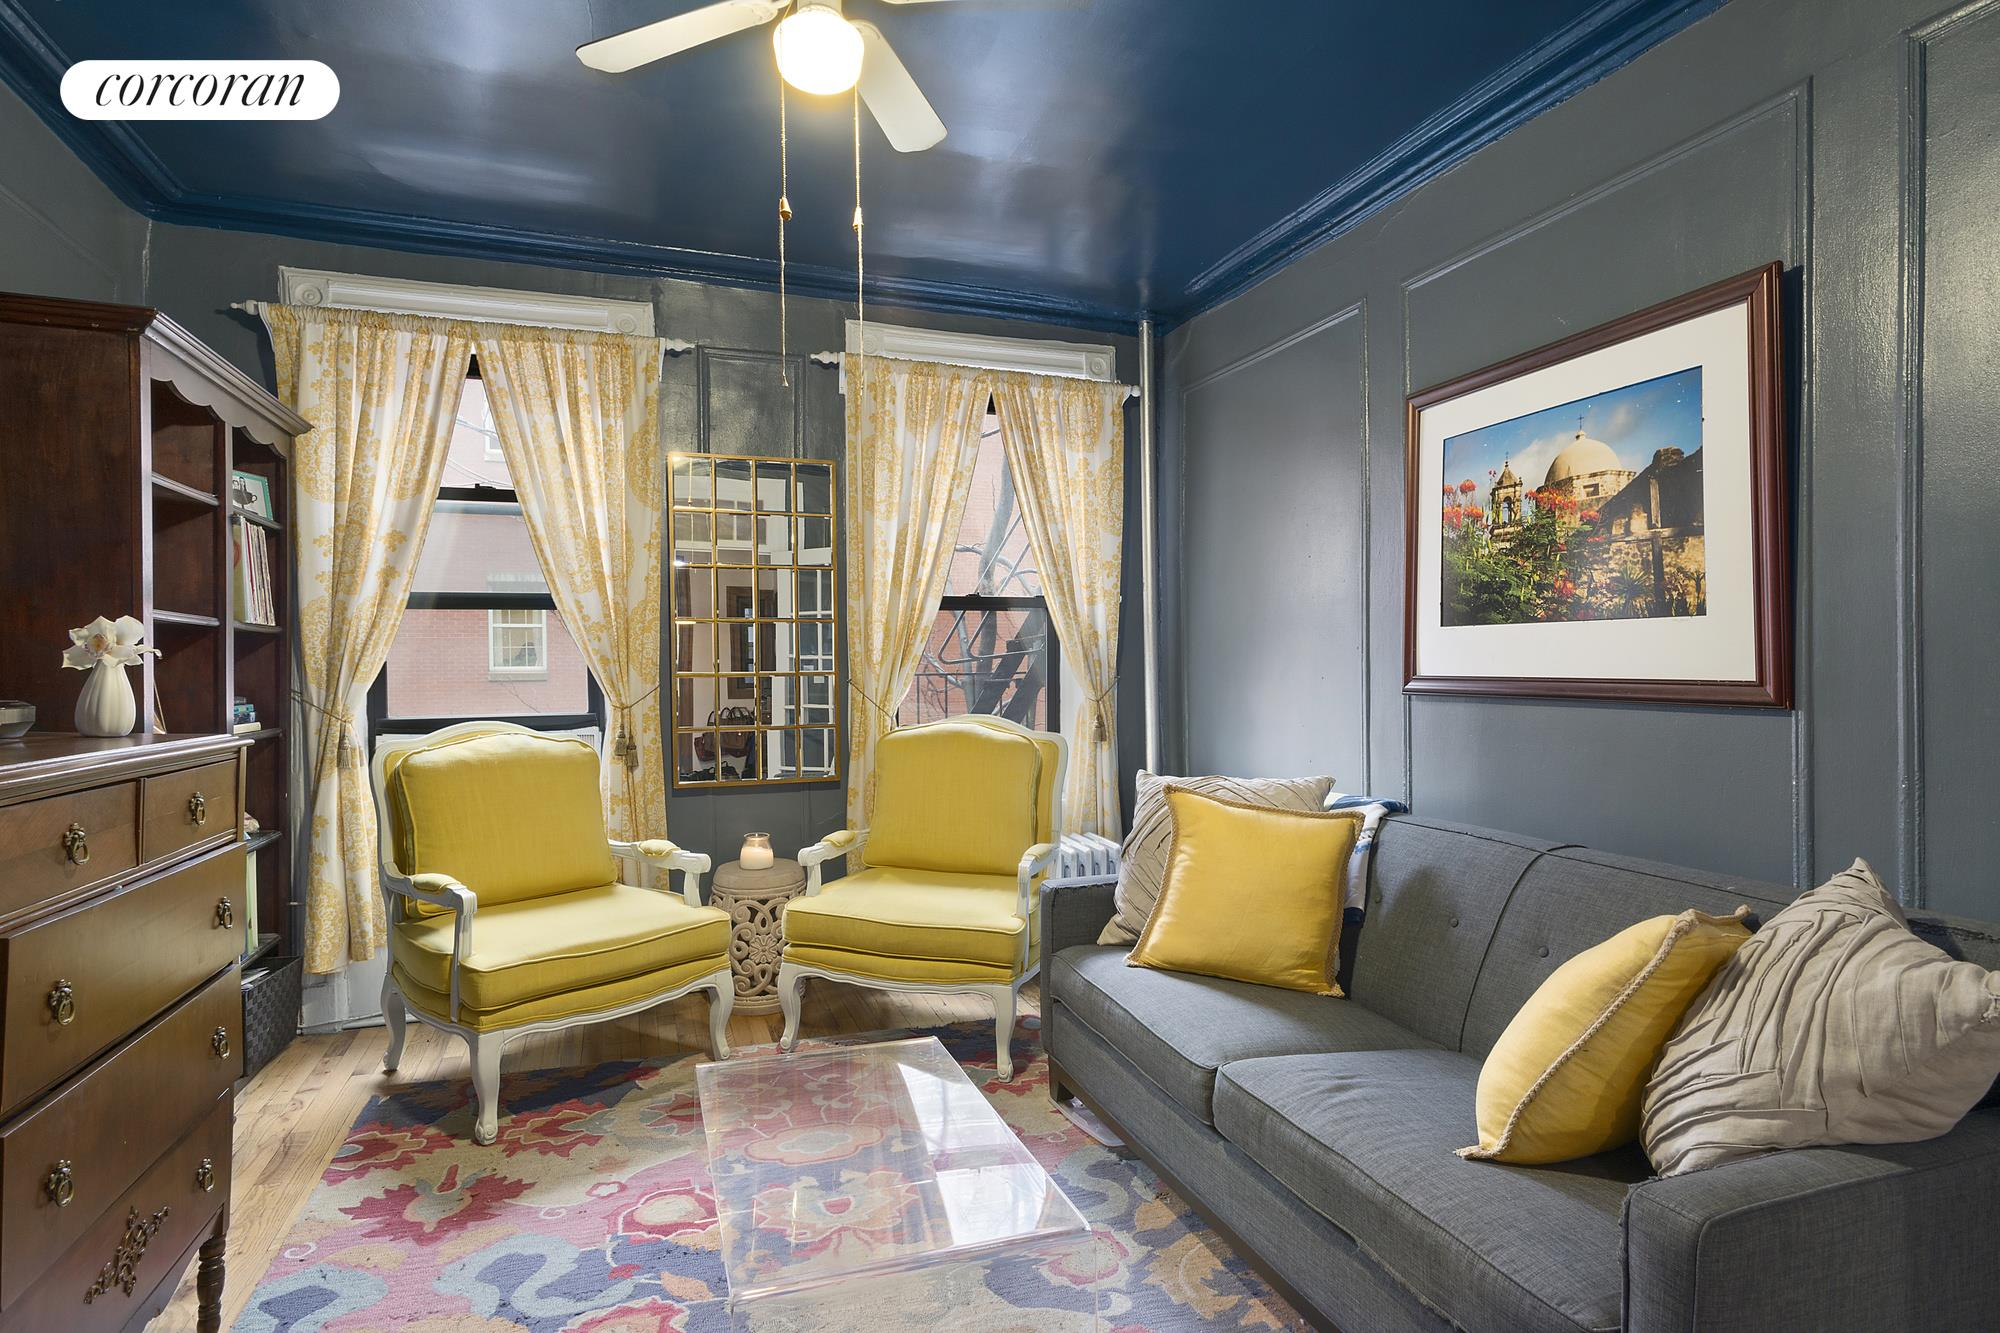 212 East 88th Street, 4C, South-Facing Living Room with French Doors